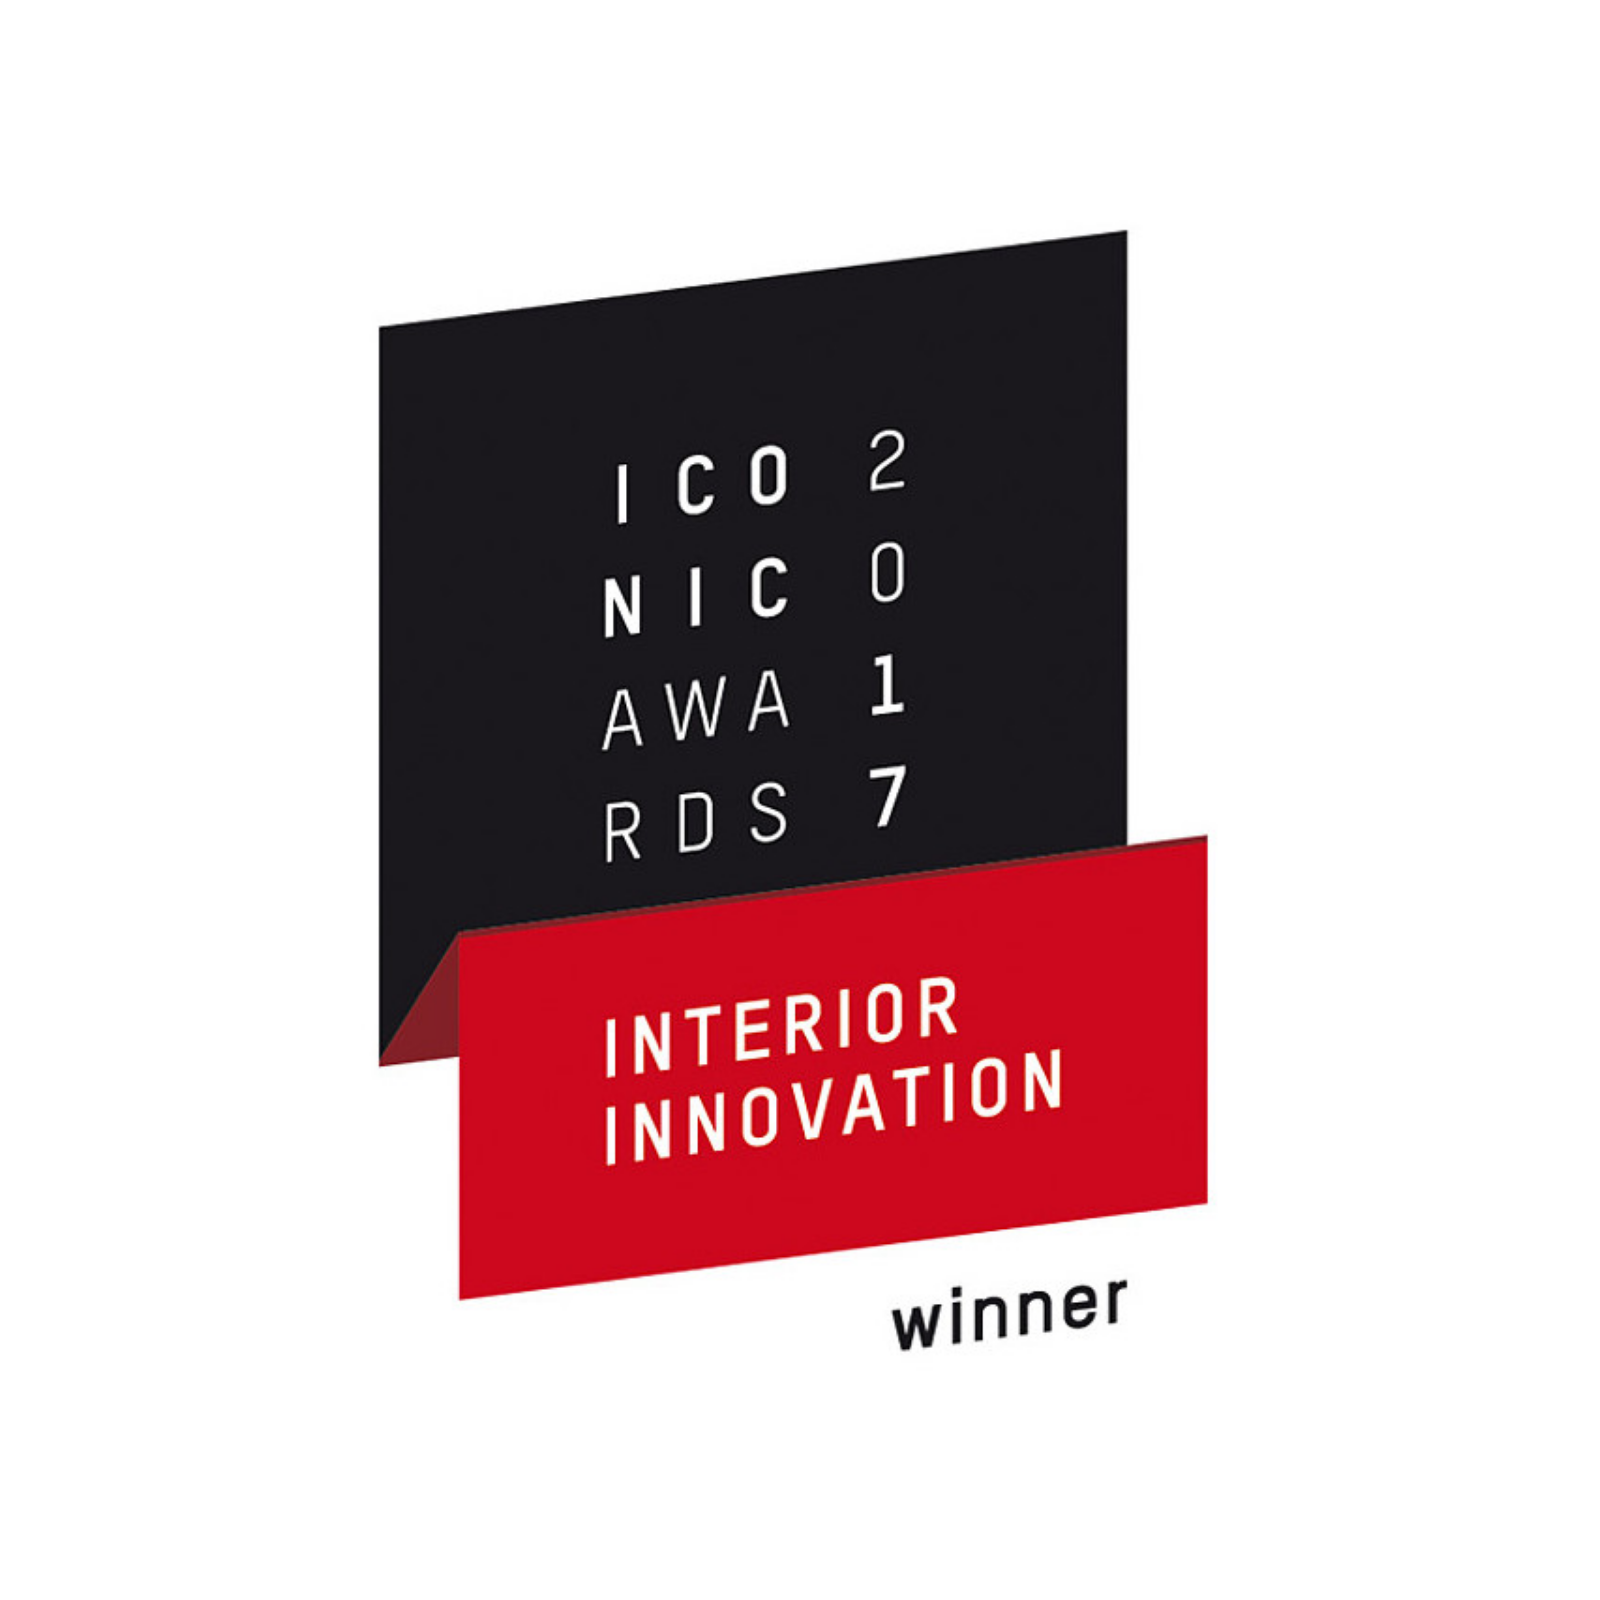 Iconic Awards 2017 - Interior Innovation Winner